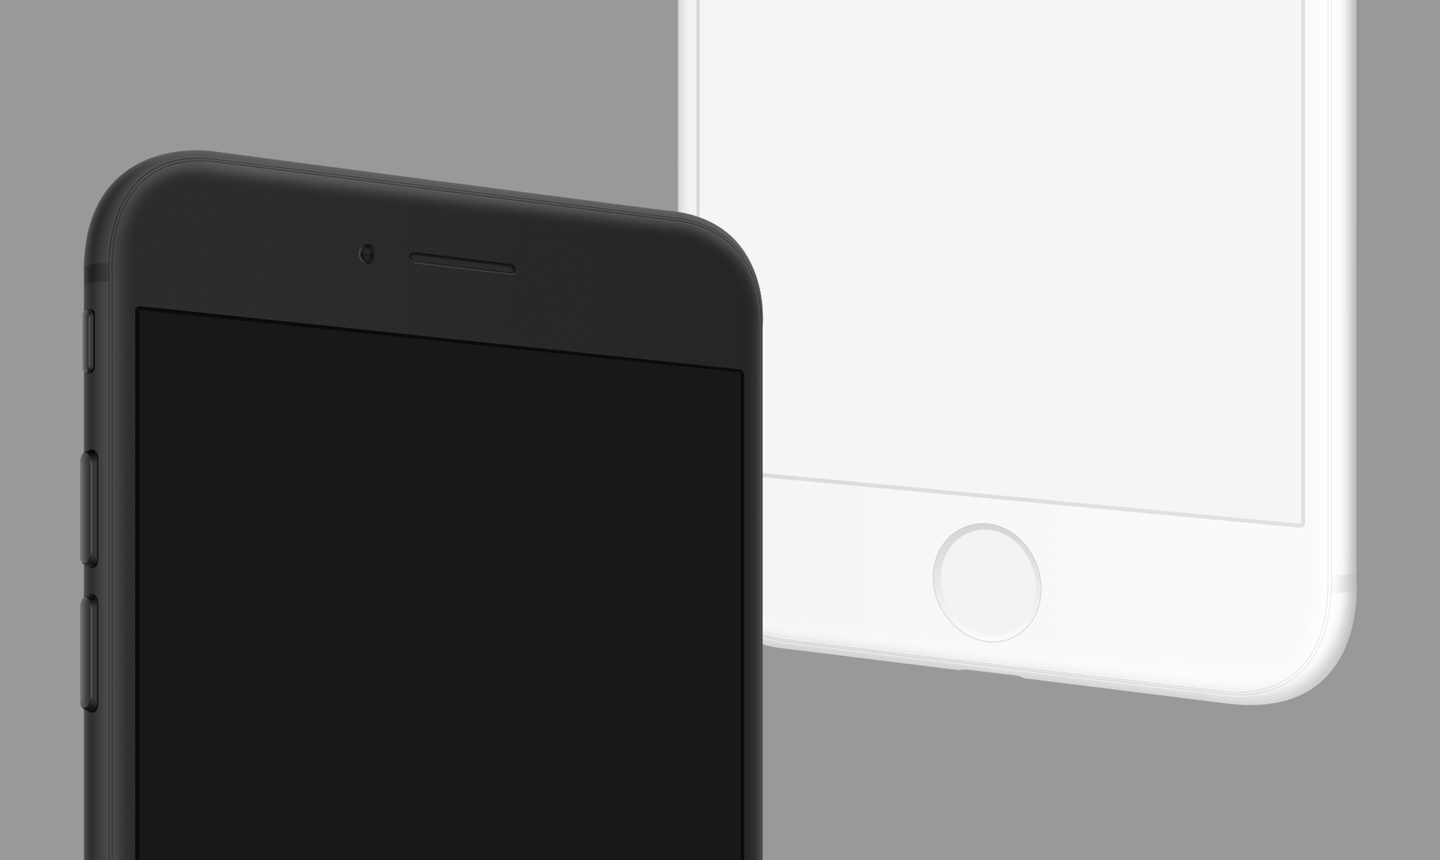 Iphone 8 clay black white frontal portrait left right psd